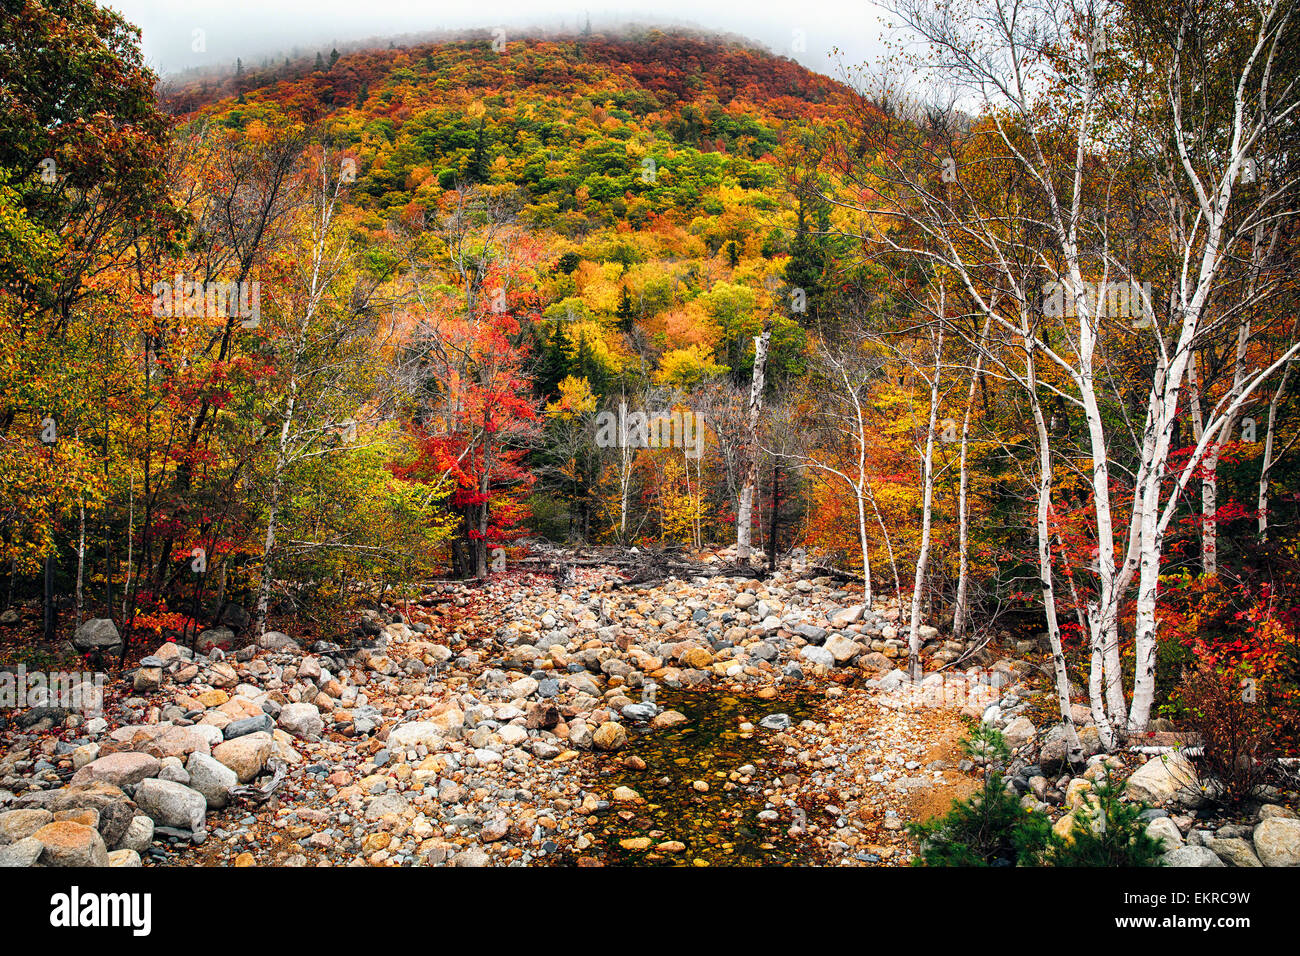 Low Angle View of a Mountain in Fog and a Dry Creek at Fall, White Mountains National Forest, New Hampshire - Stock Image